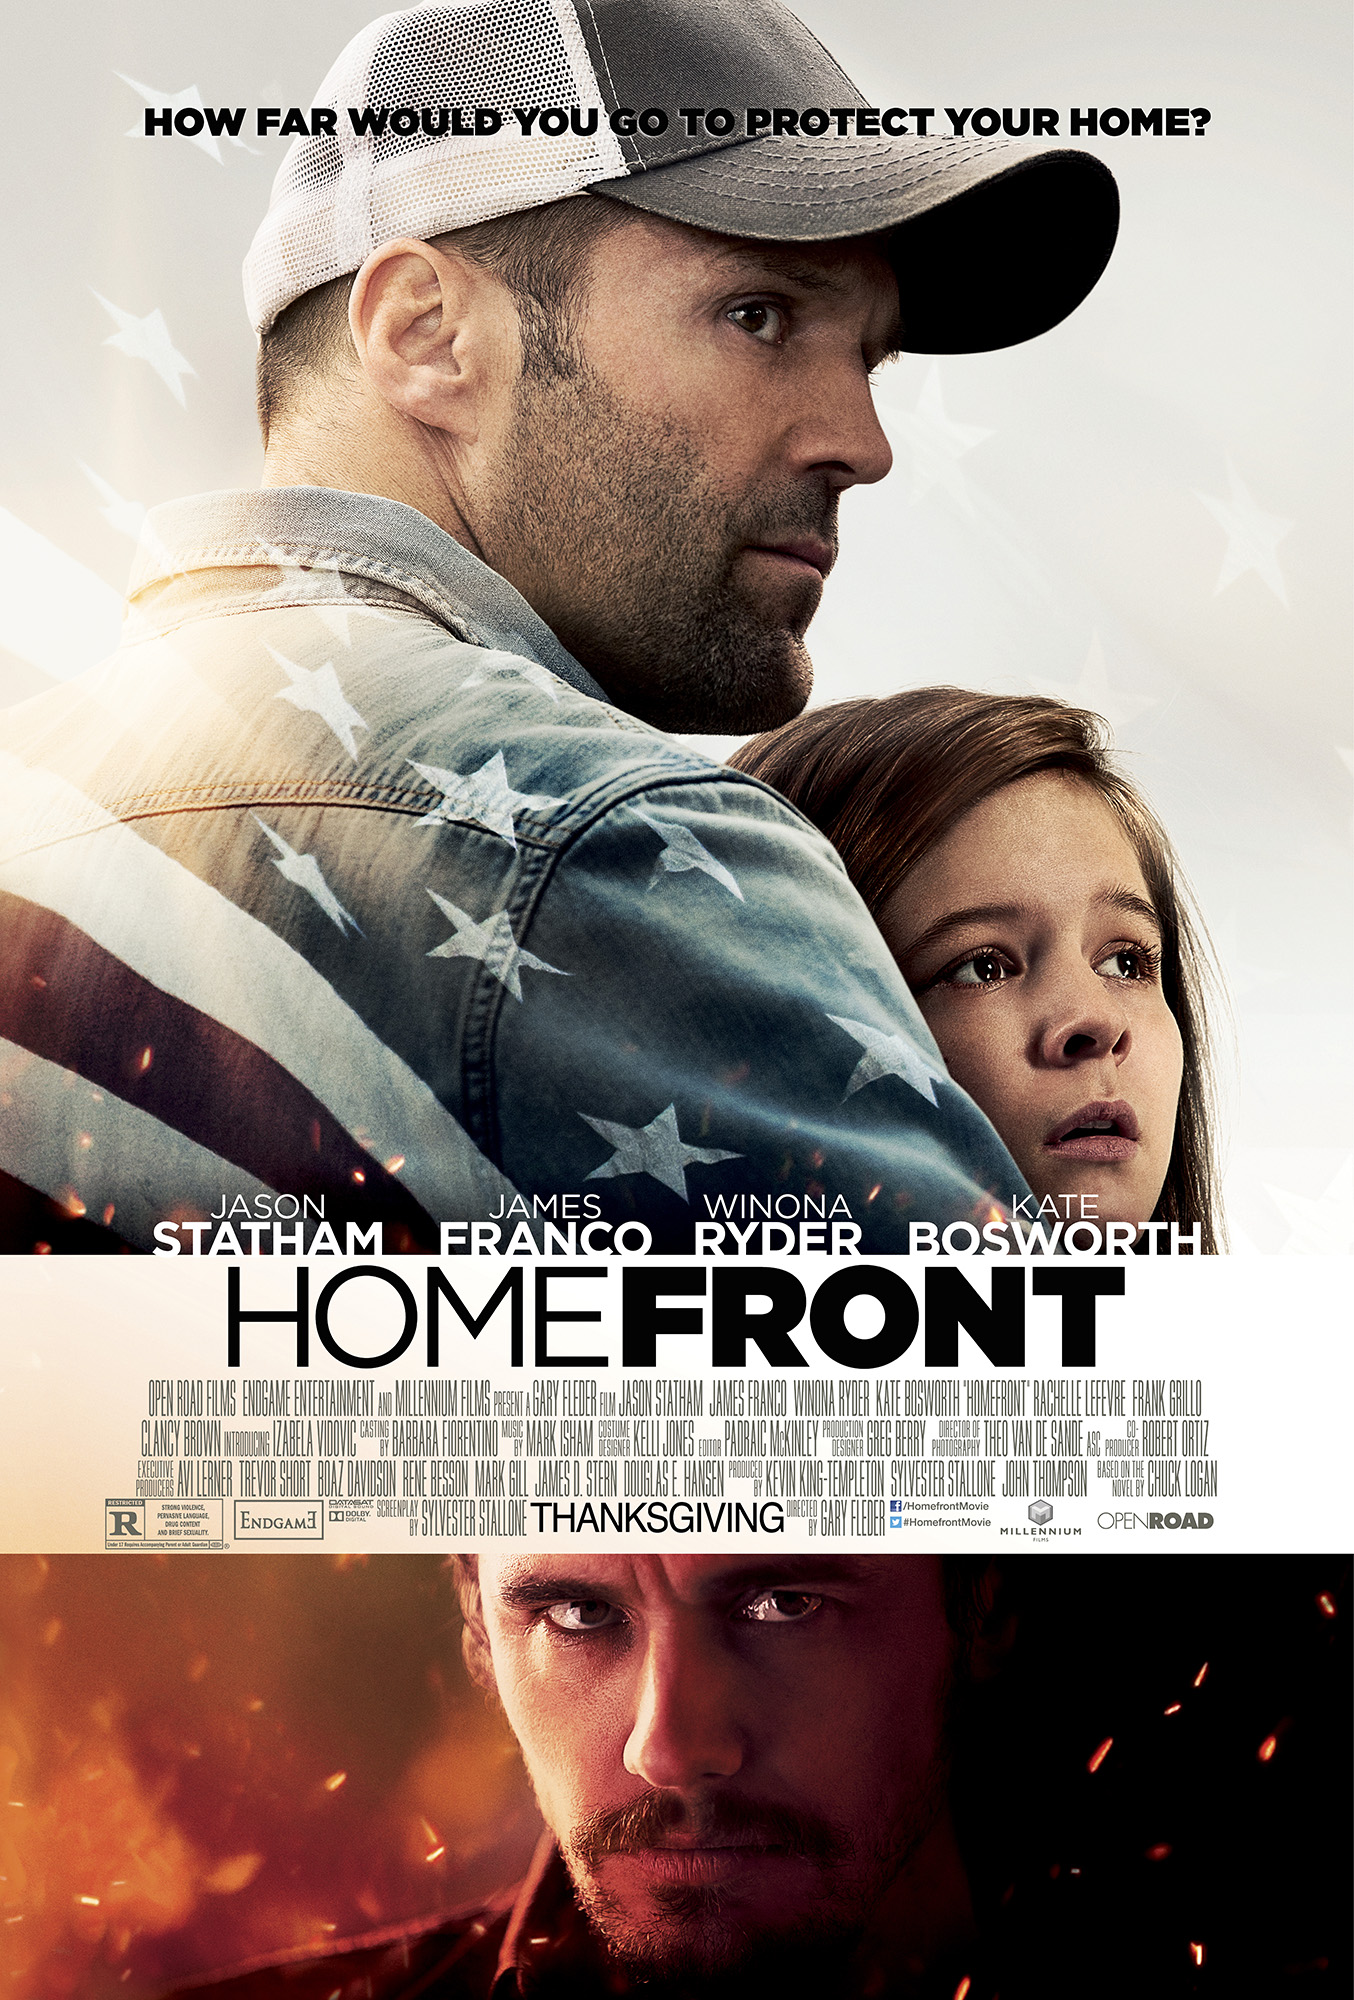 Homefront Poster New Trailer for Homefront, Starring James Franco and Jason Statham, Released